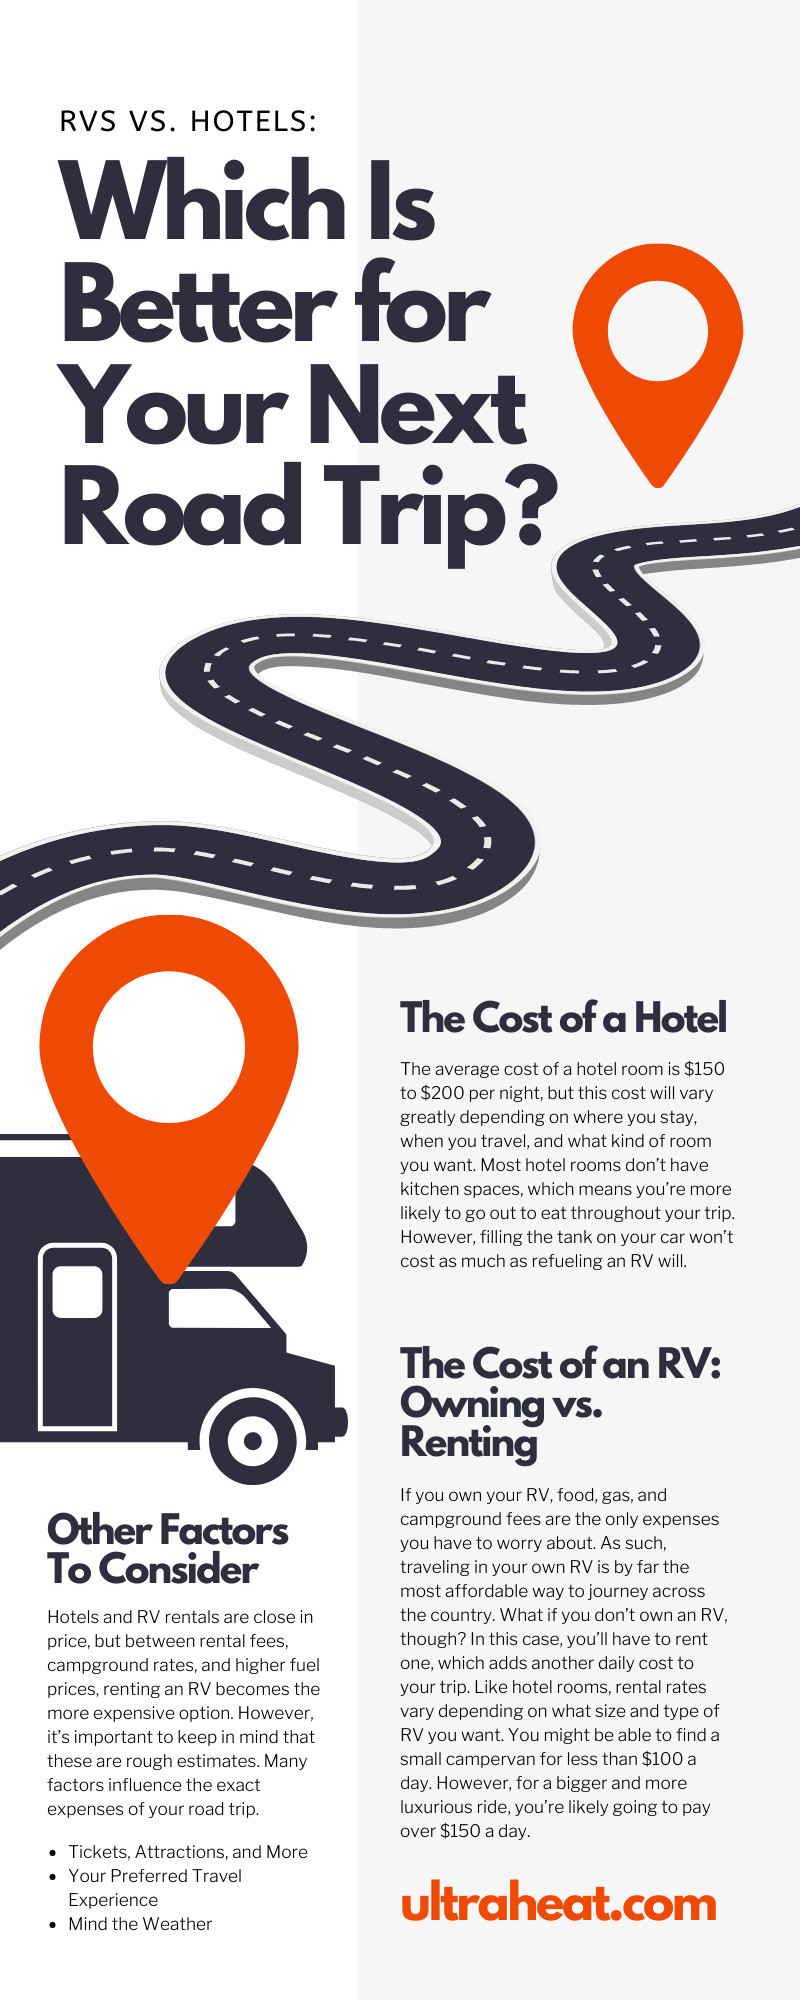 RVs vs. Hotels: Which Is Better for Your Next Road Trip?